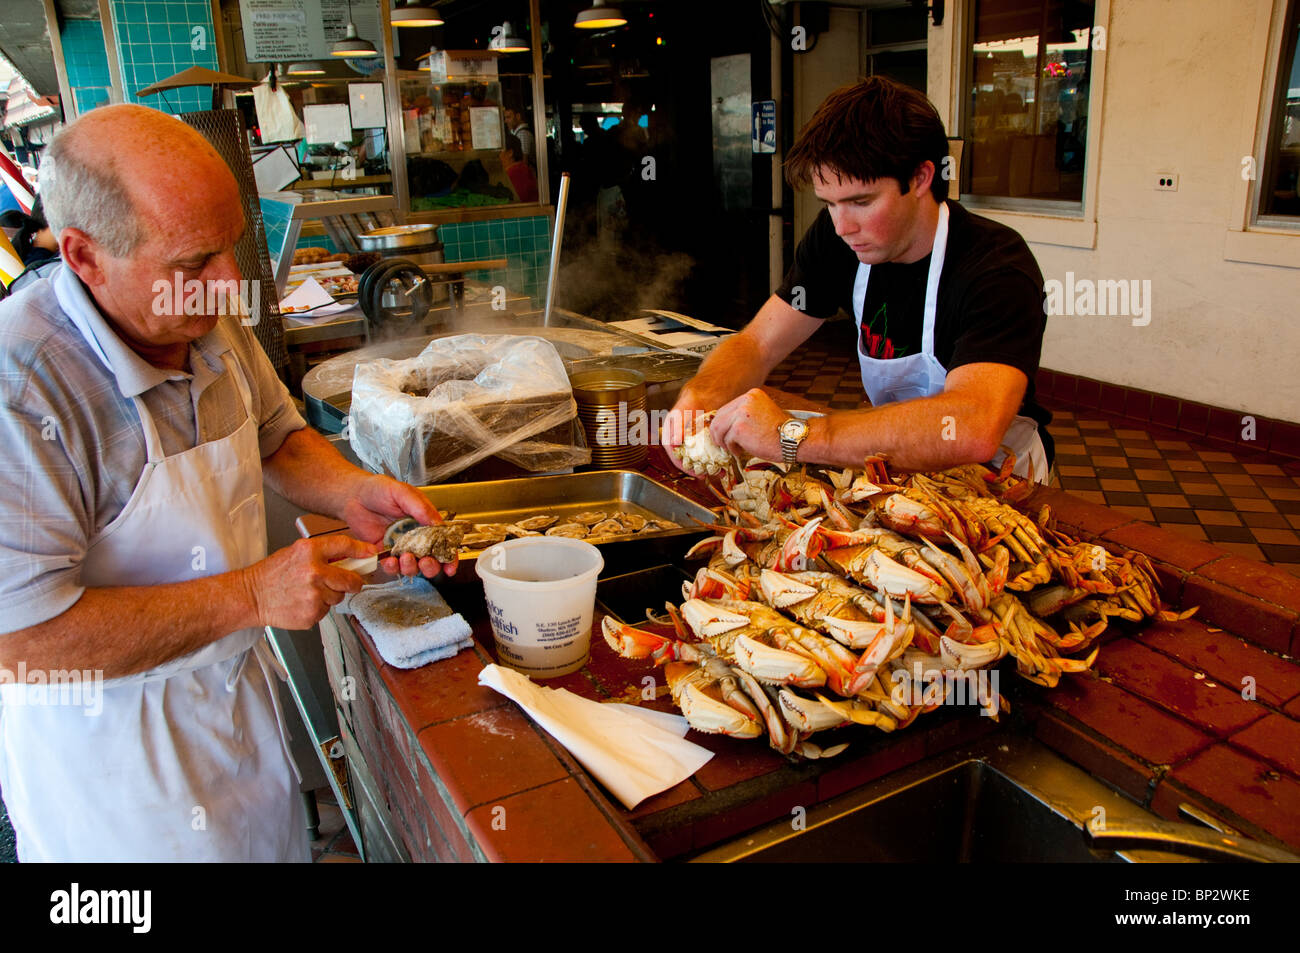 San francisco preparing dungeness crab at fisherman 39 s for Fishing store san francisco